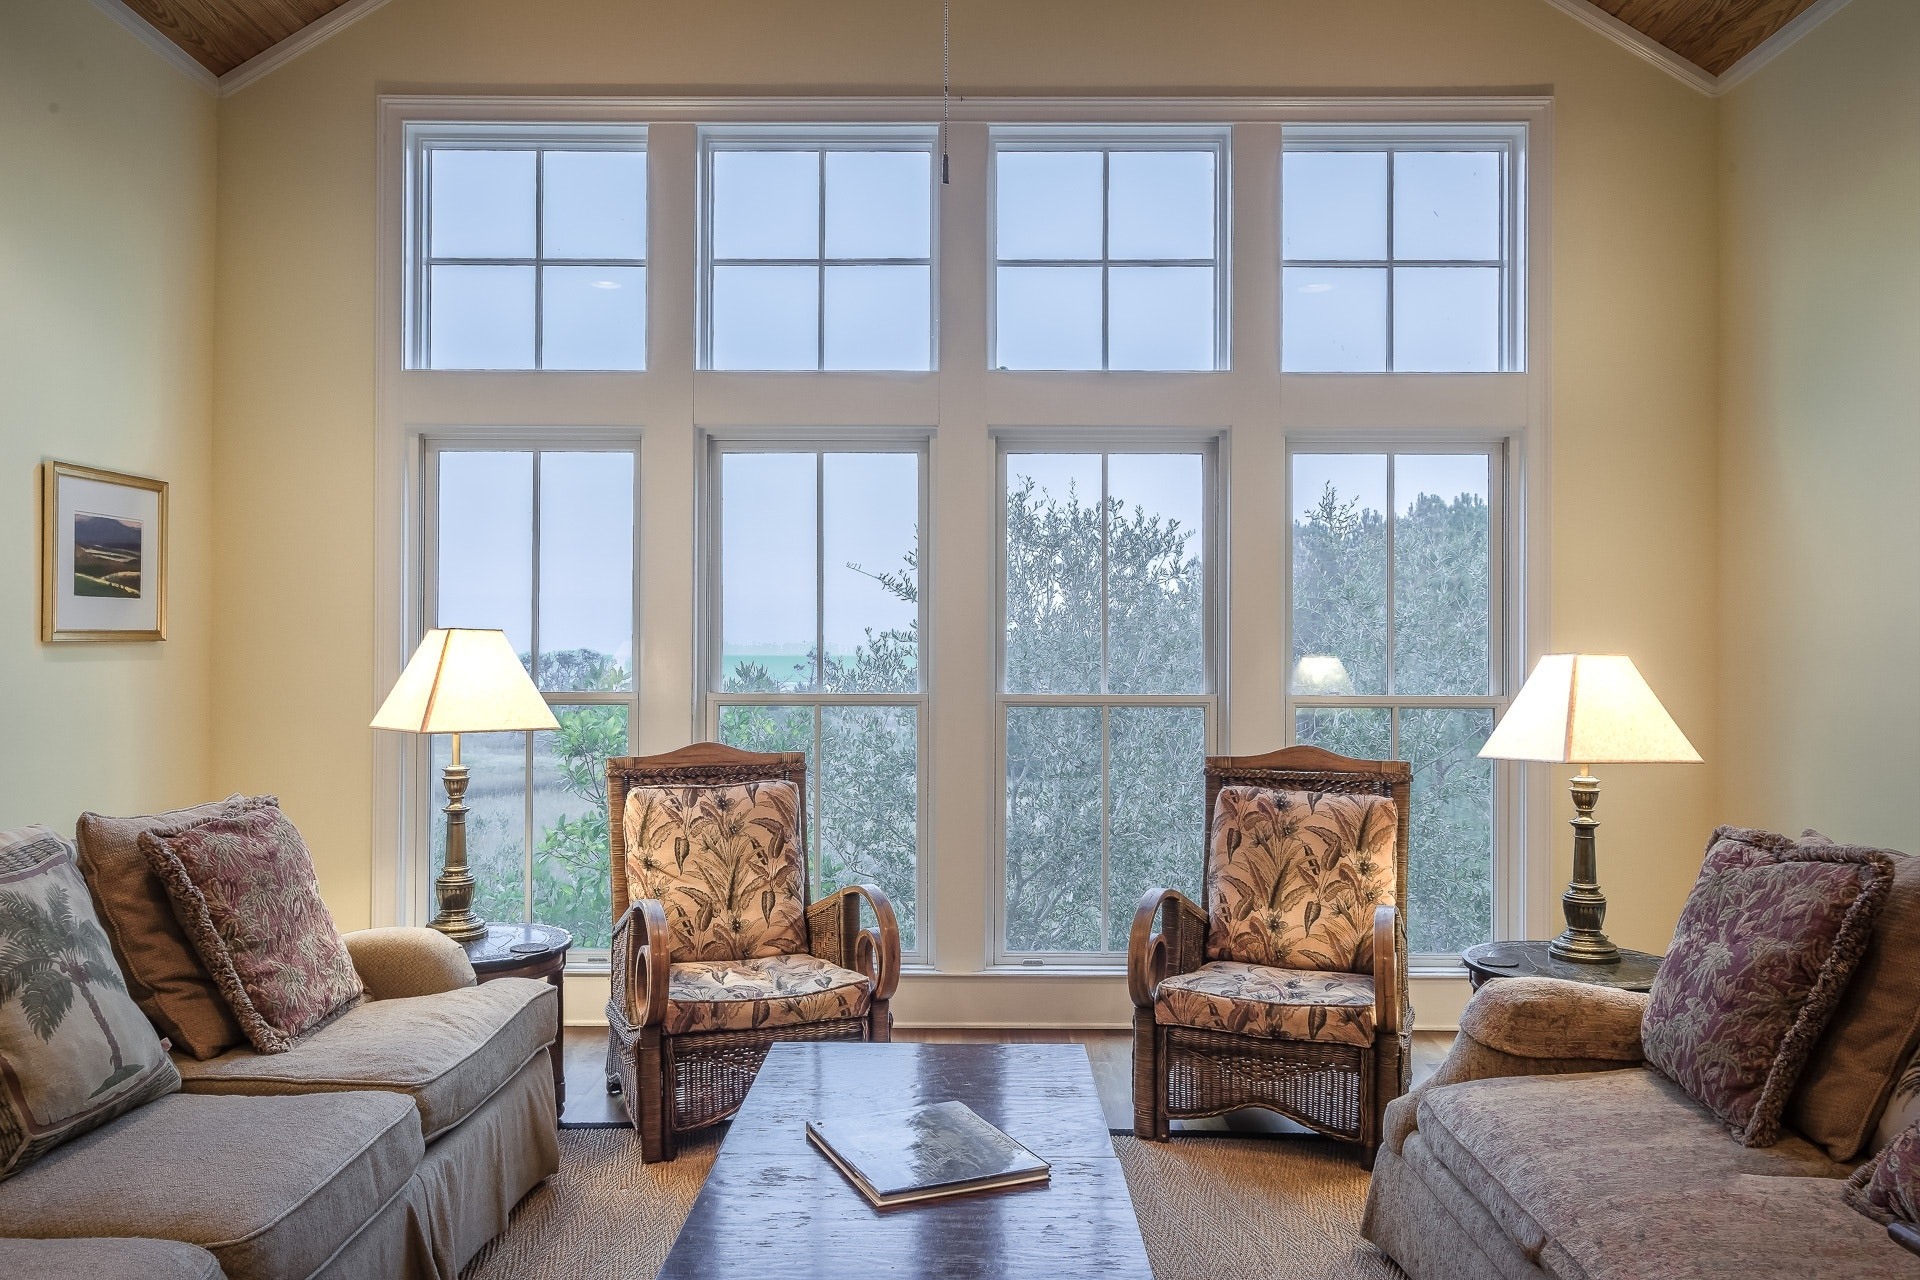 Looking For More Light? Consider Adding a Sunroom!